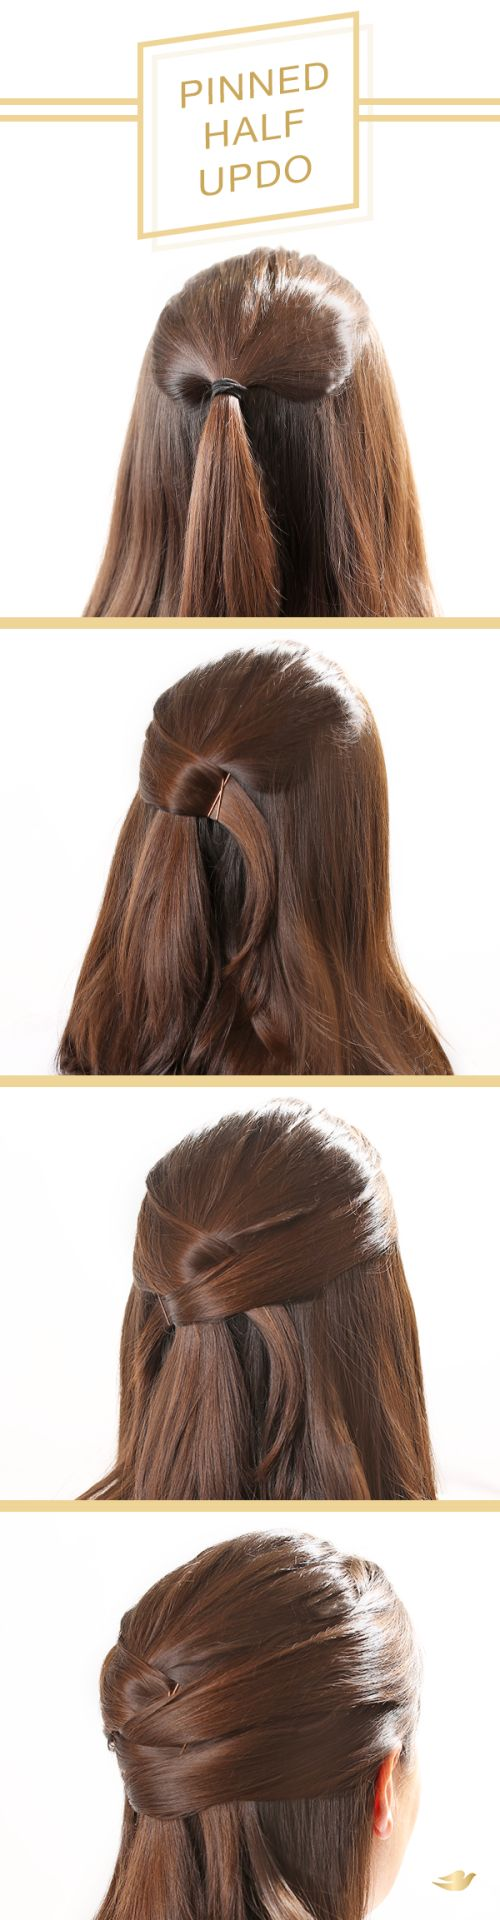 To get this beautiful pinned half updo, follow this step-by-step hair tutorial. It's a pretty style to wear to your next holiday party if you have long to medium length hair.